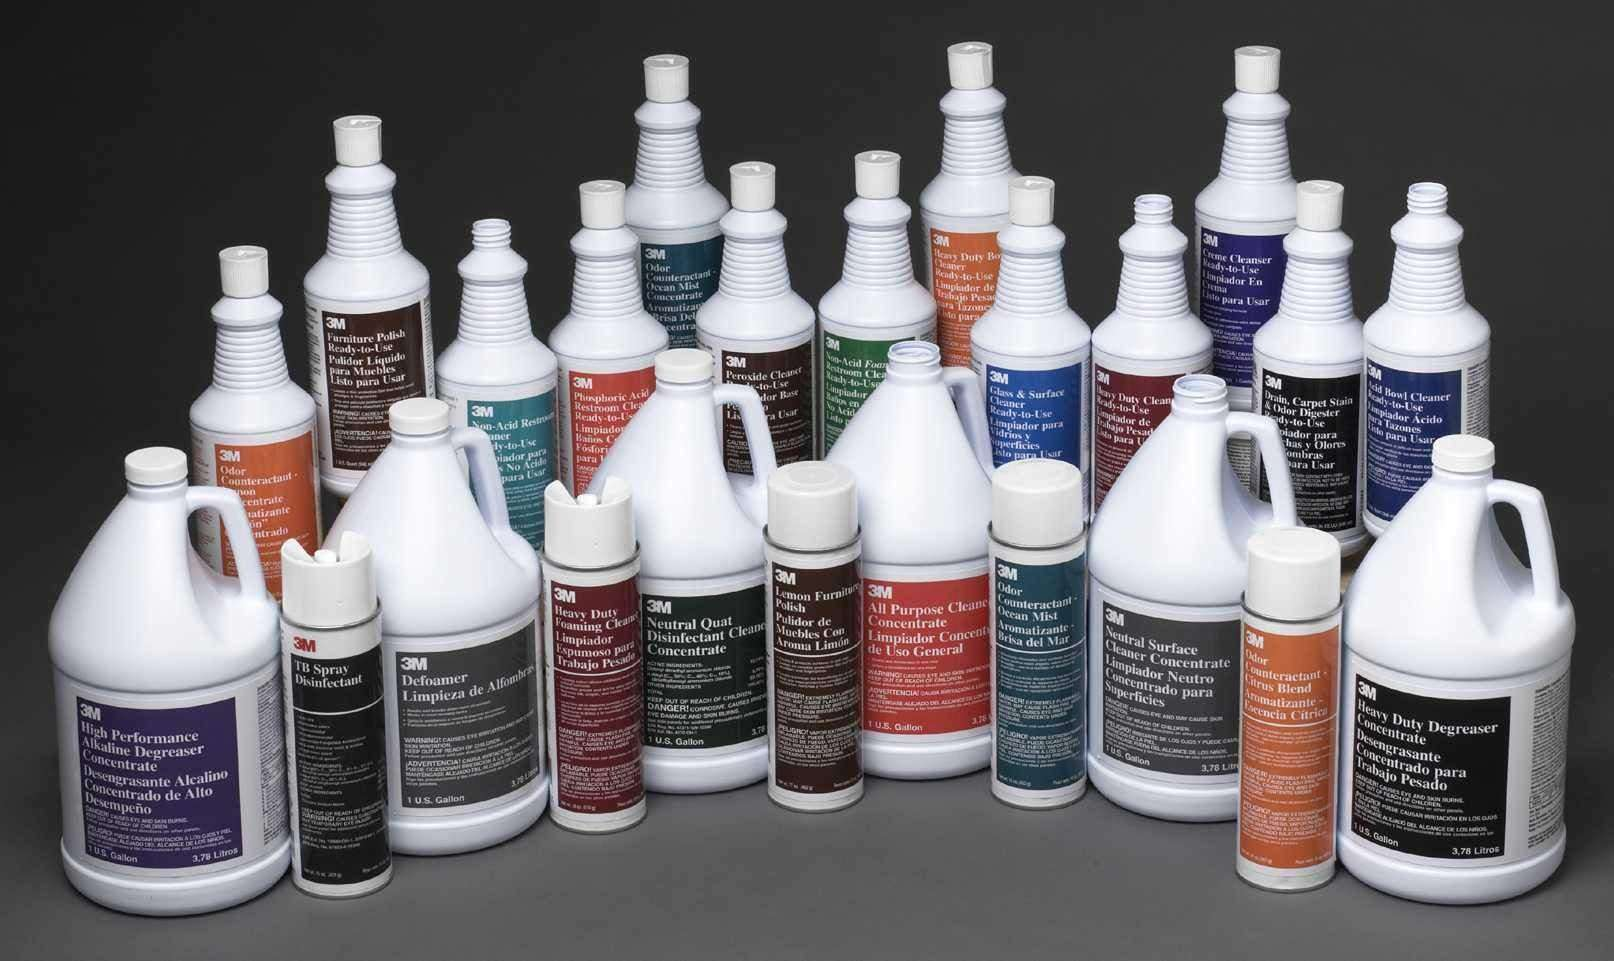 3m Introduces 23 New Commercial Cleaning Products